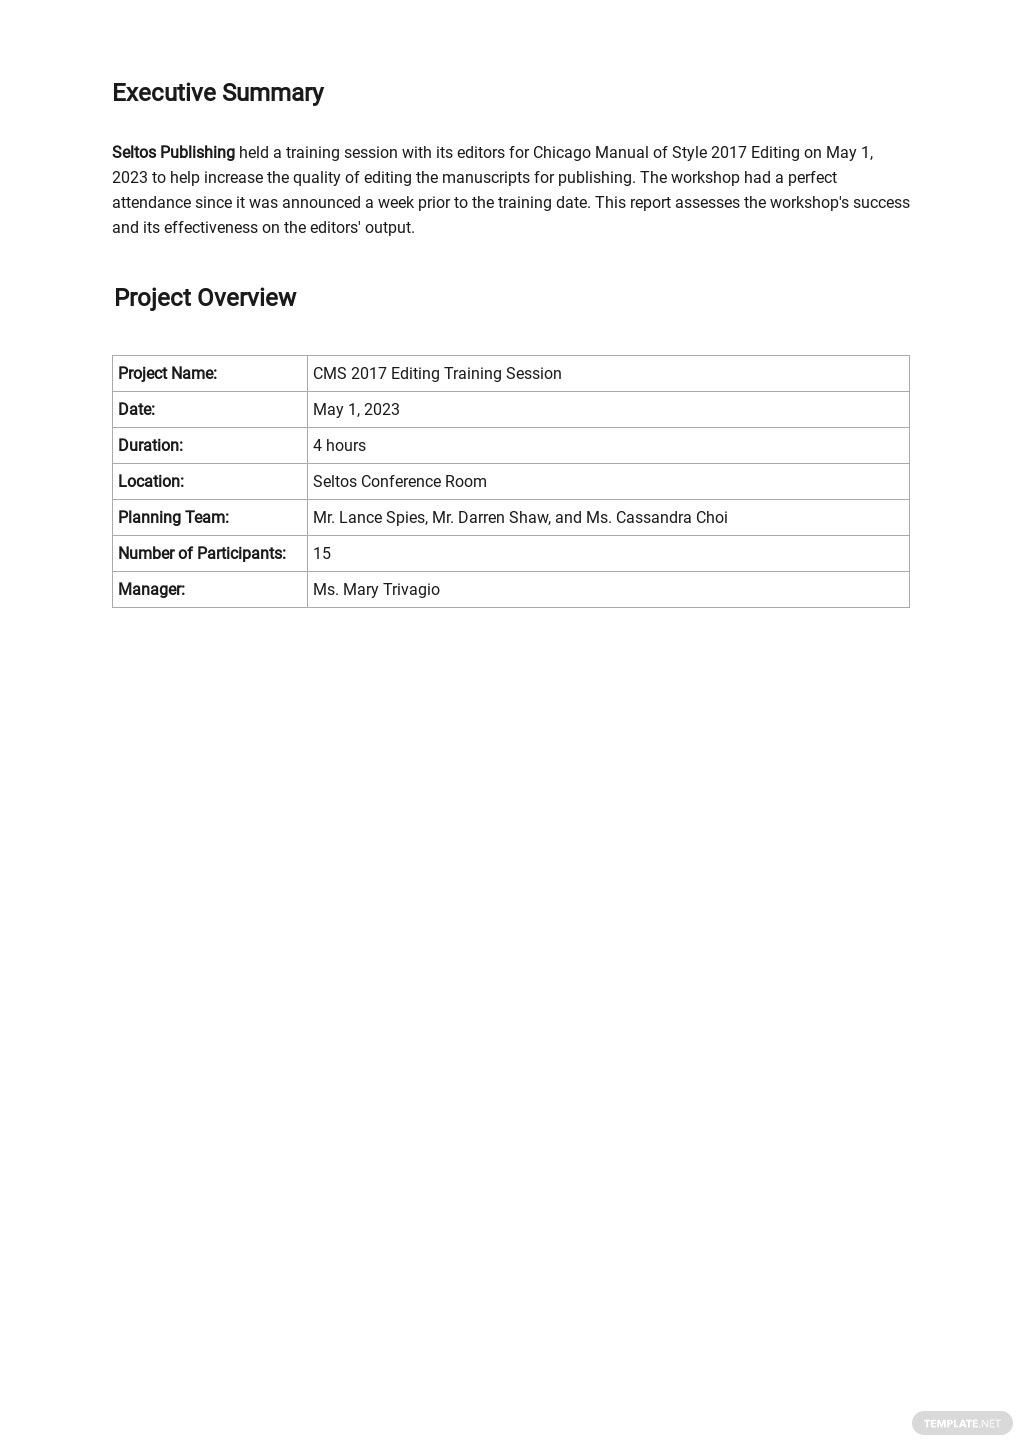 After Action Report Template 1.jpe